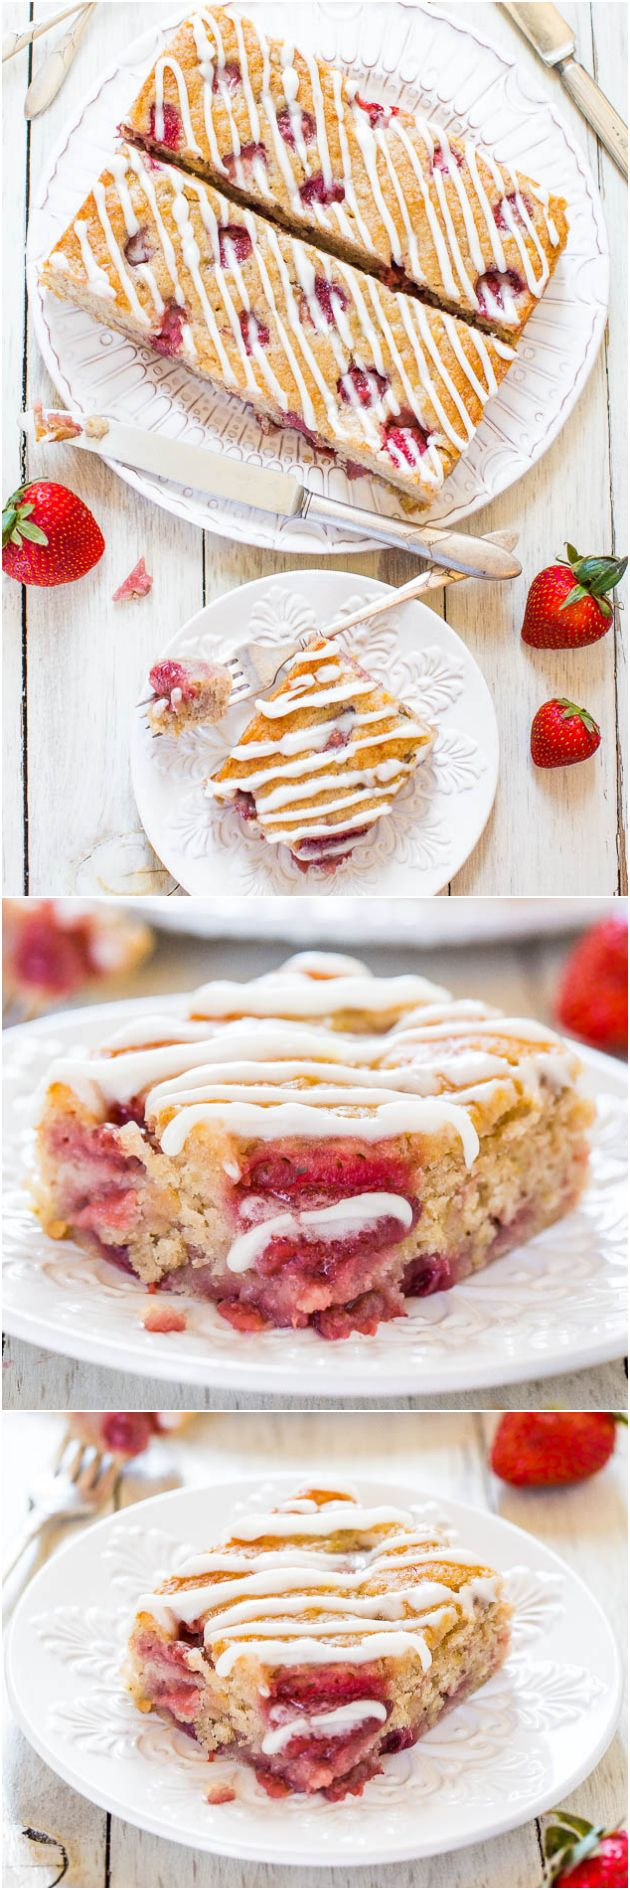 Soft & Fluffy Strawberry Banana Cake (vegan) - You'll never miss the eggs or butter in this soft, healthier cake bursting with berries!